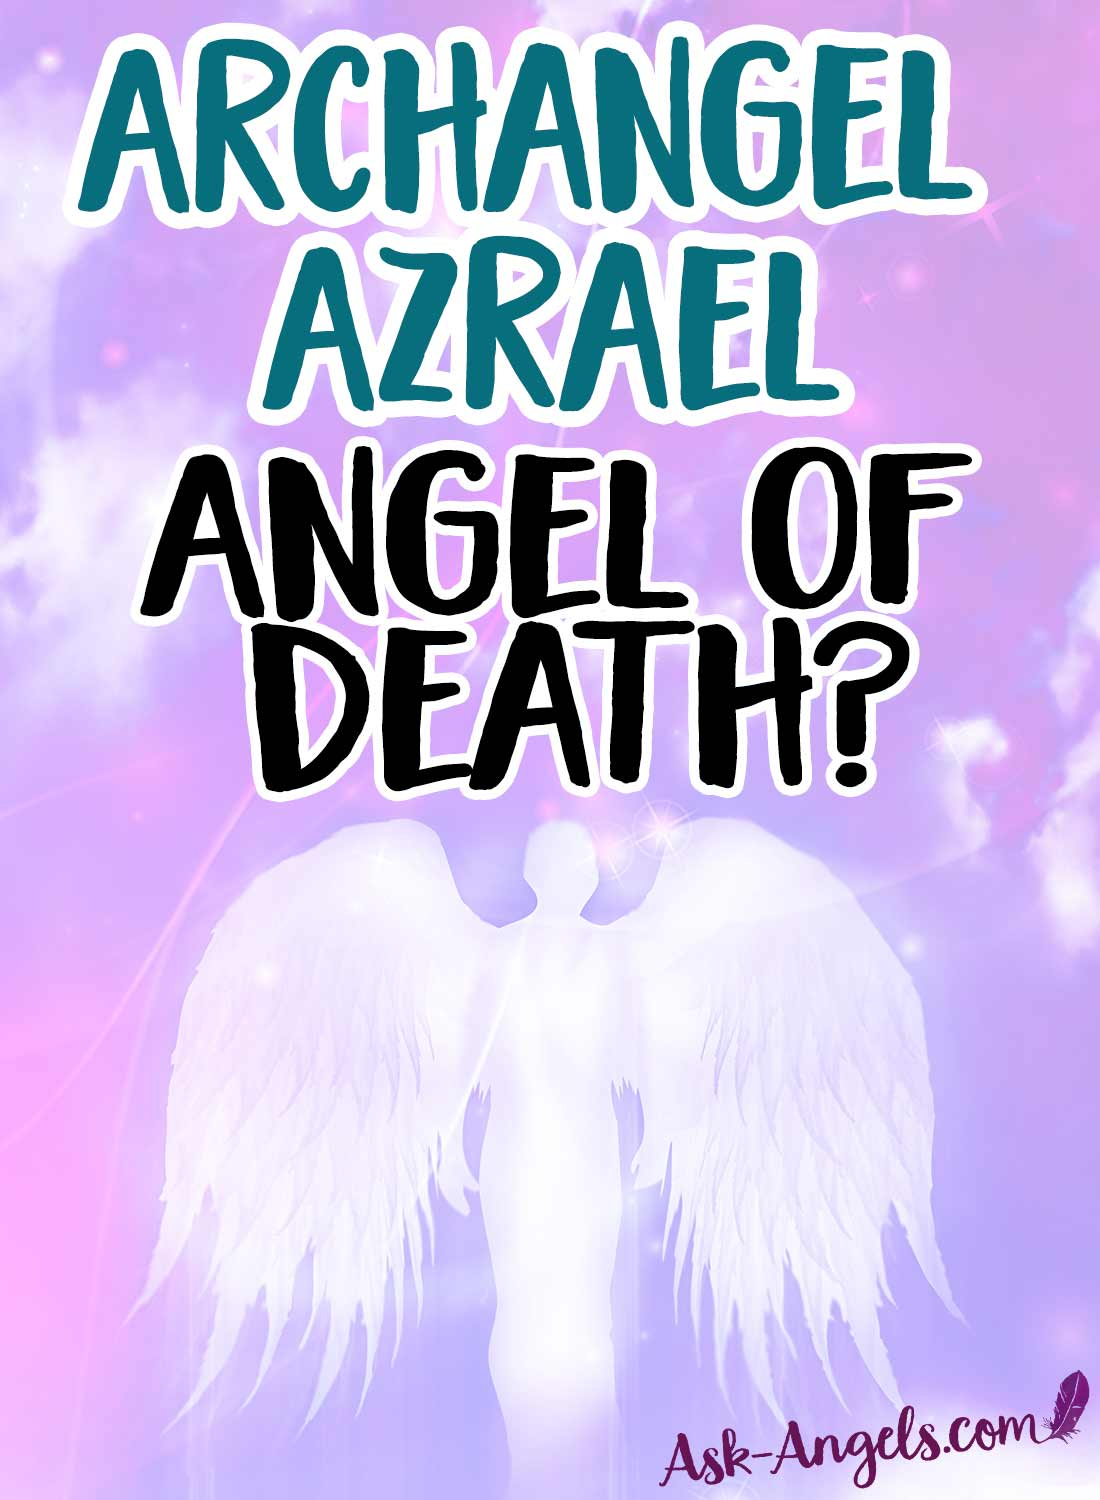 Archangel Azrael - The Angel of Death?